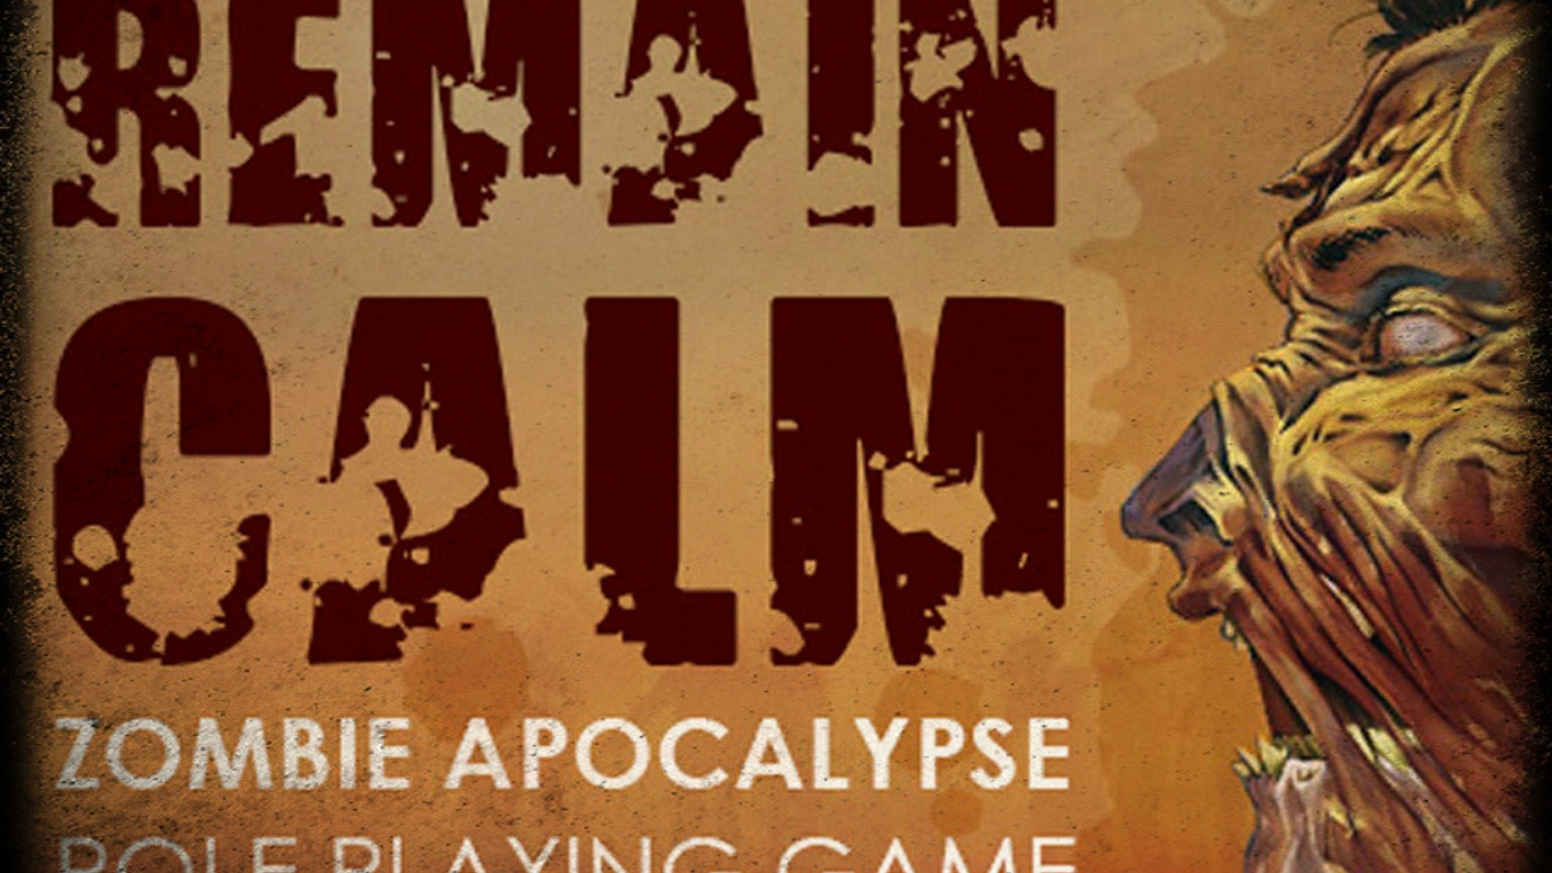 Remain Calm RPG is set in the modern zombie apocalypse. But there are no heroes here, instead your character is you.